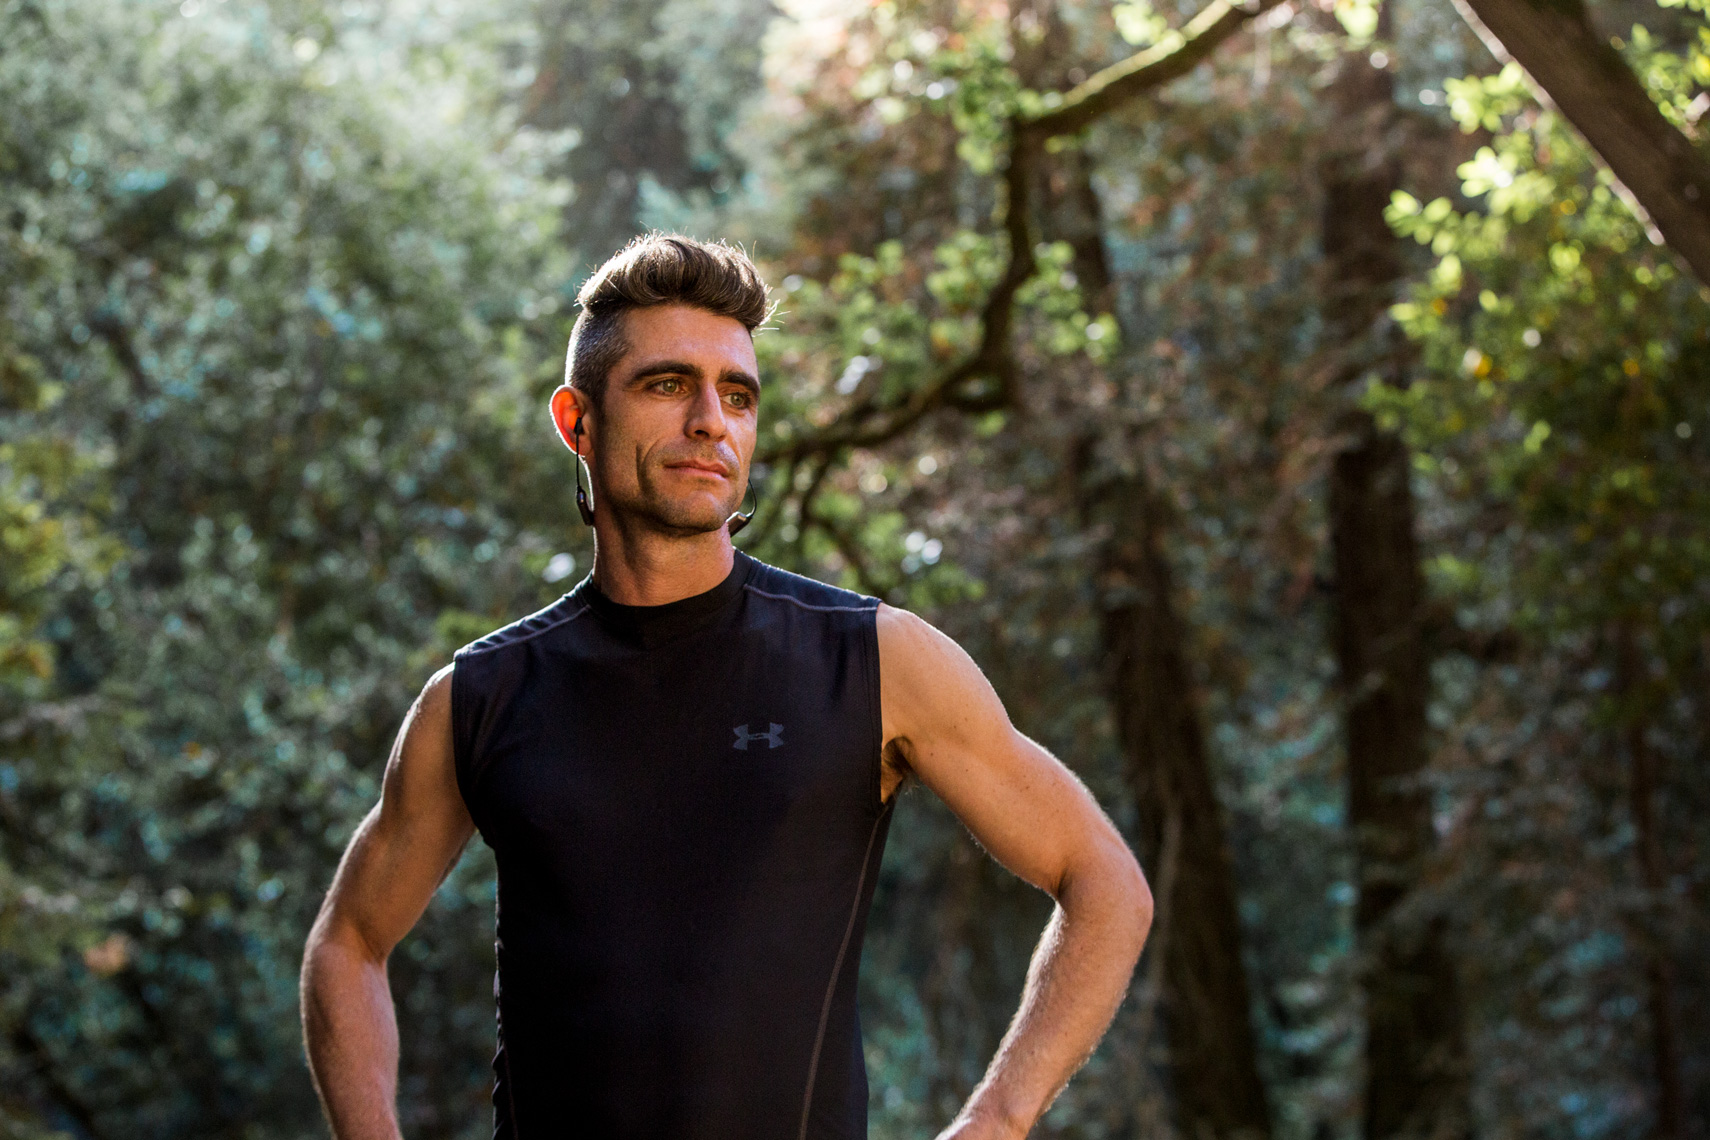 Portrait of athletic man on a trail run